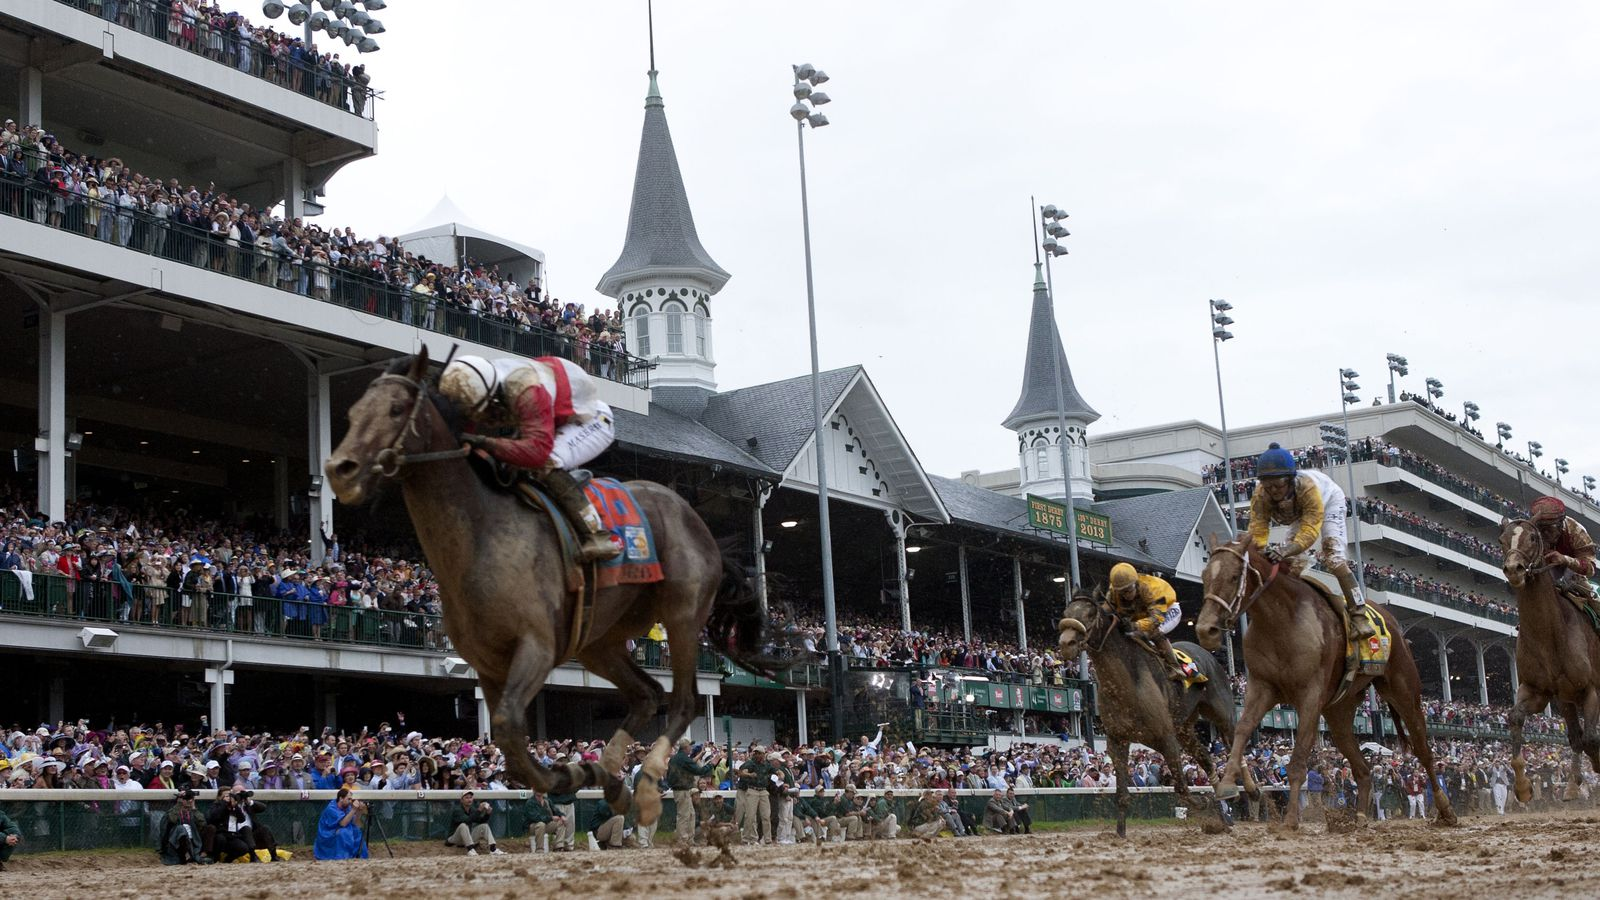 Kentucky Derby 2013: Recapping Orb's Victory